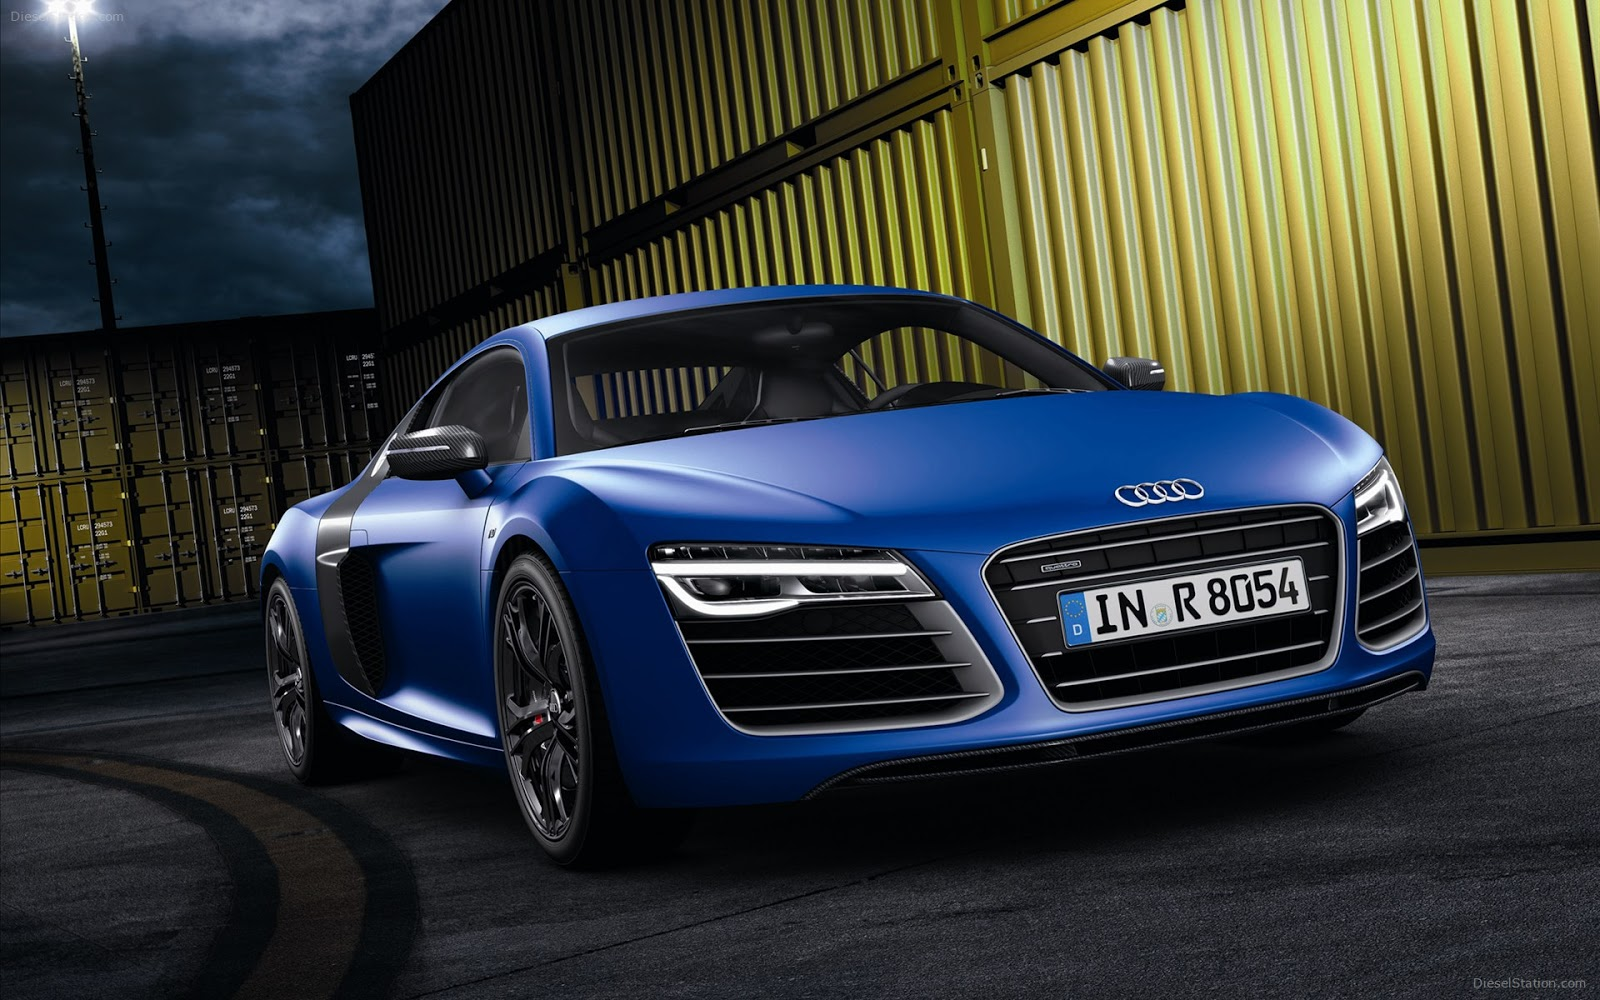 http://4.bp.blogspot.com/-jmVvSEFnLnw/UIpH75QYt3I/AAAAAAAAm9I/2FhXaDNb-GE/s1600/Audi-R8-V10-plus-2013-Car-Wallpapers-video-01.jpg